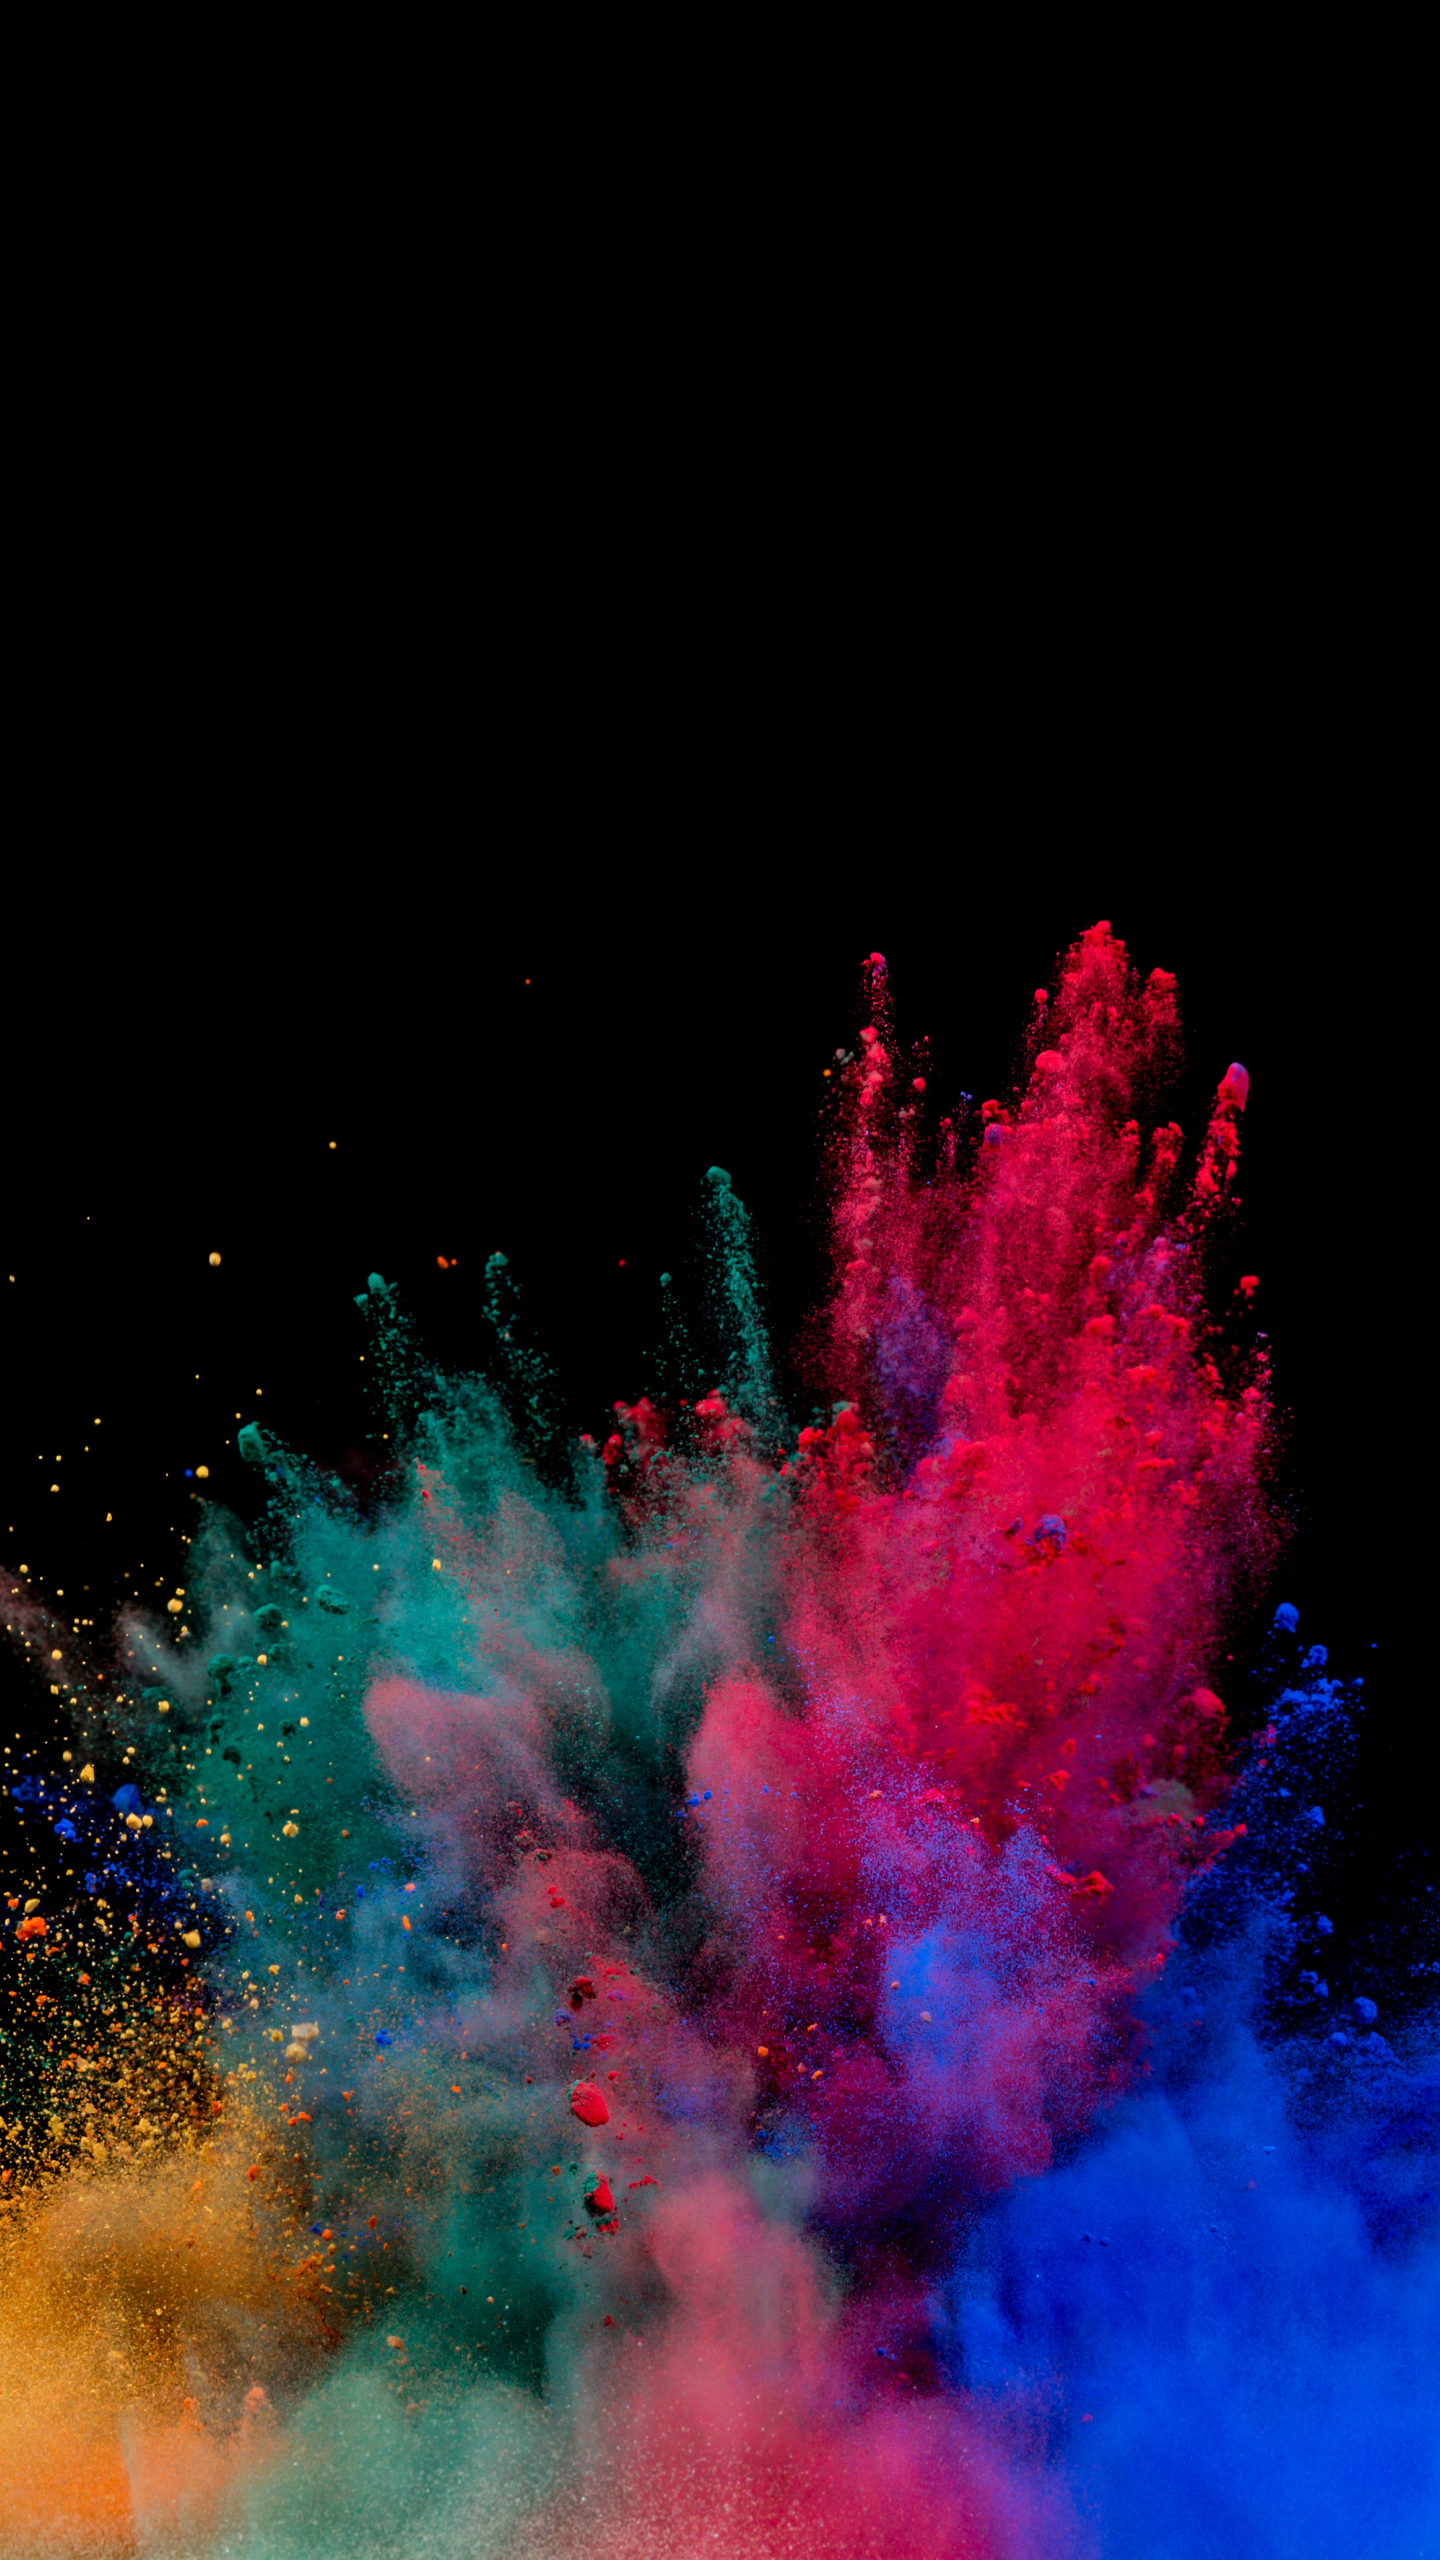 Cute Wallpapers For Mobile Samsung Download 1440x2560 Wallpaper Colors Blast Explosion